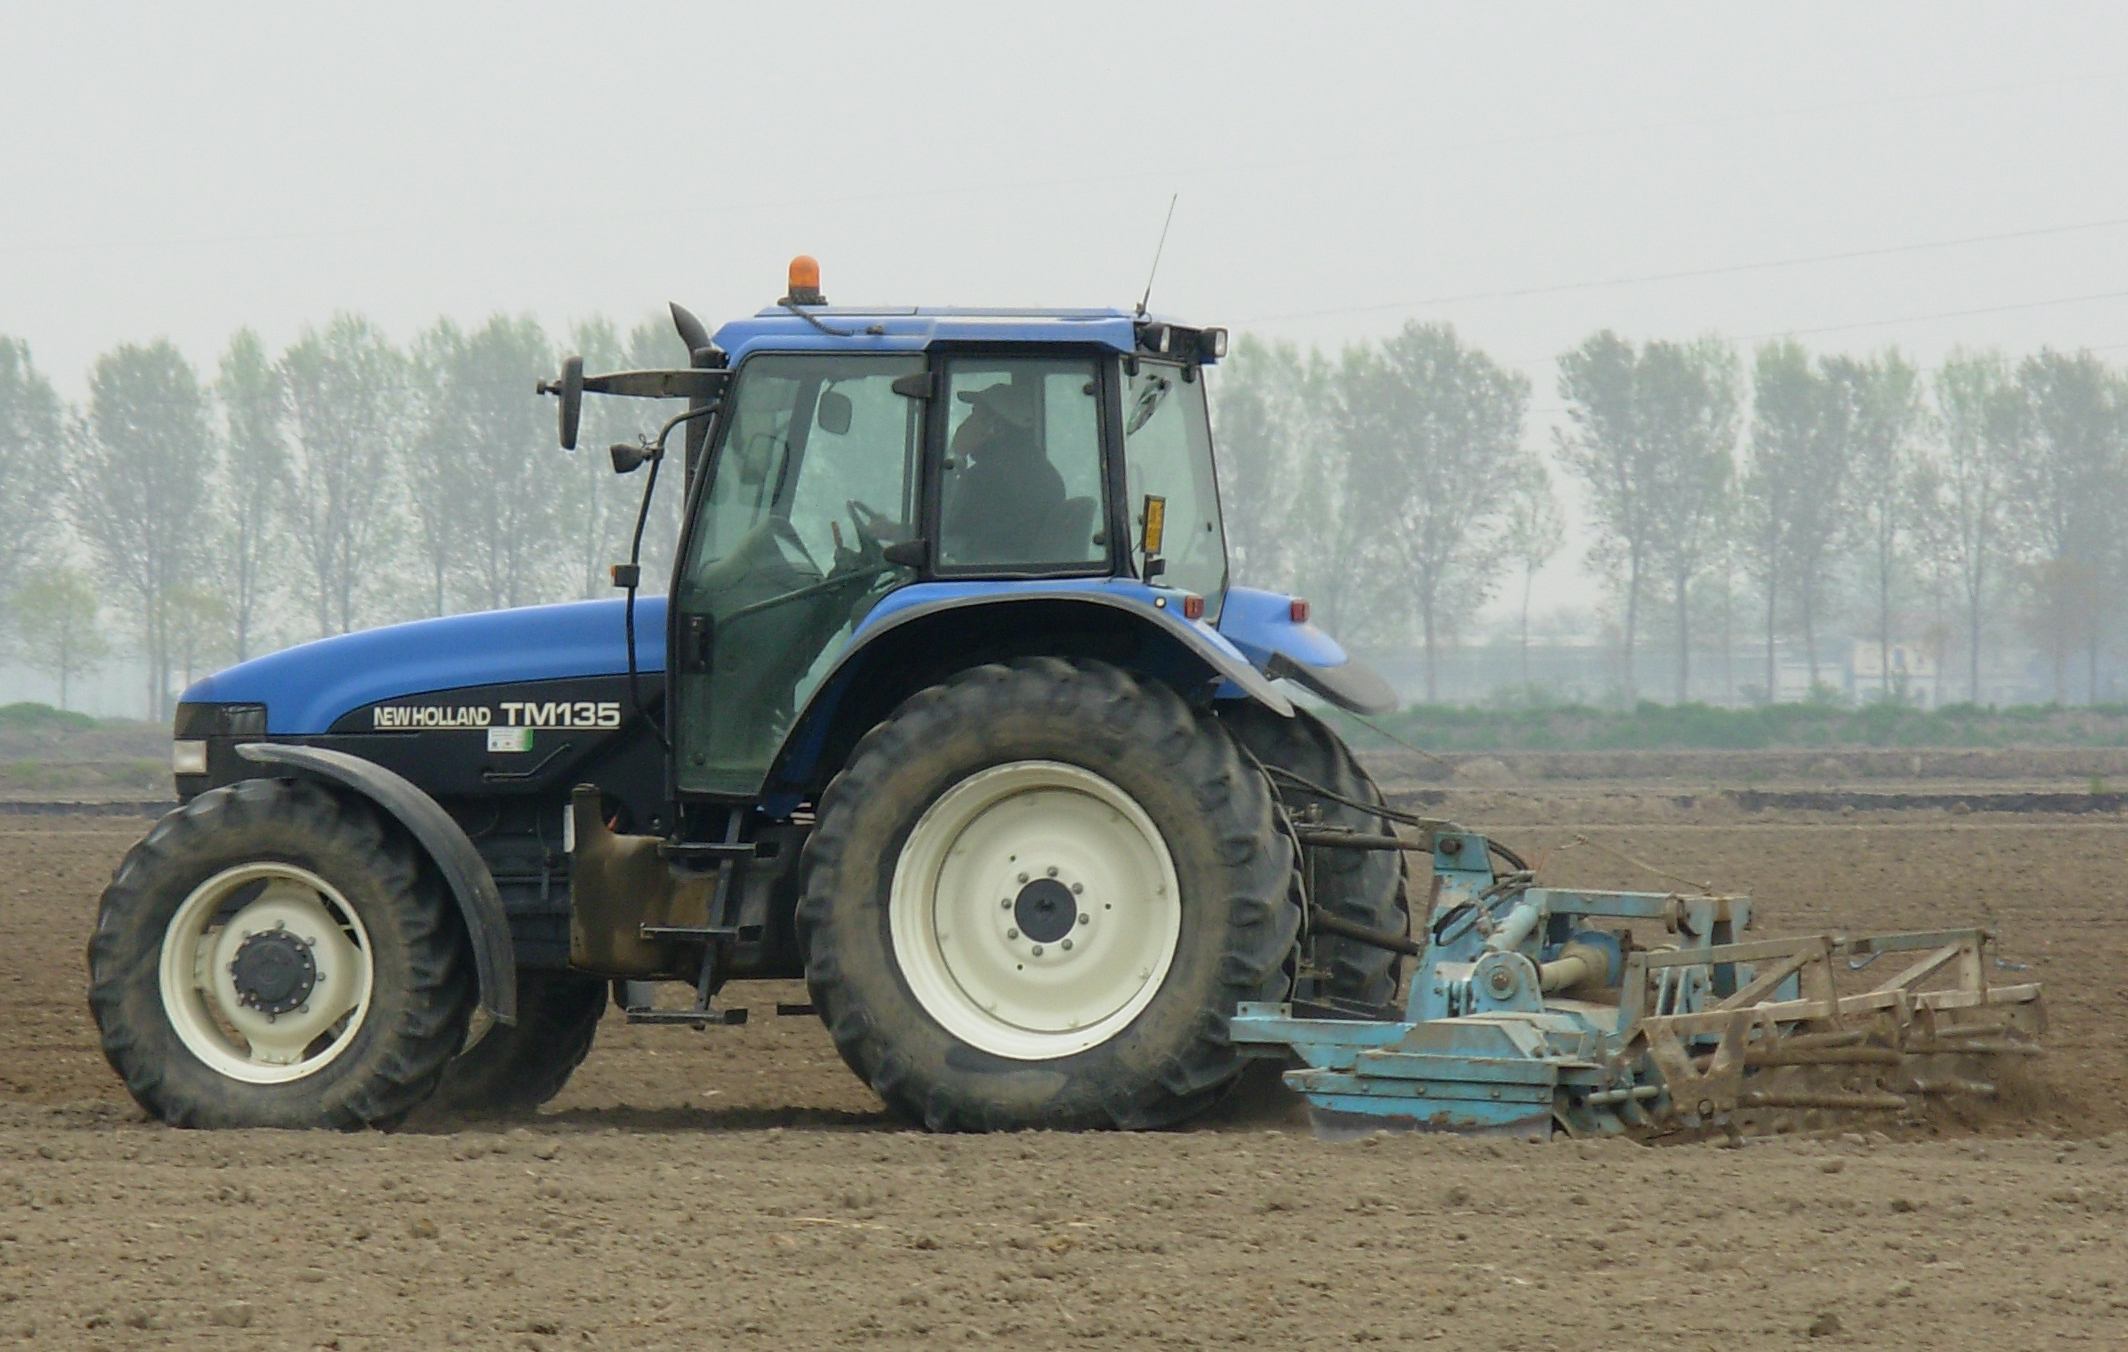 New holland tm photo - 4